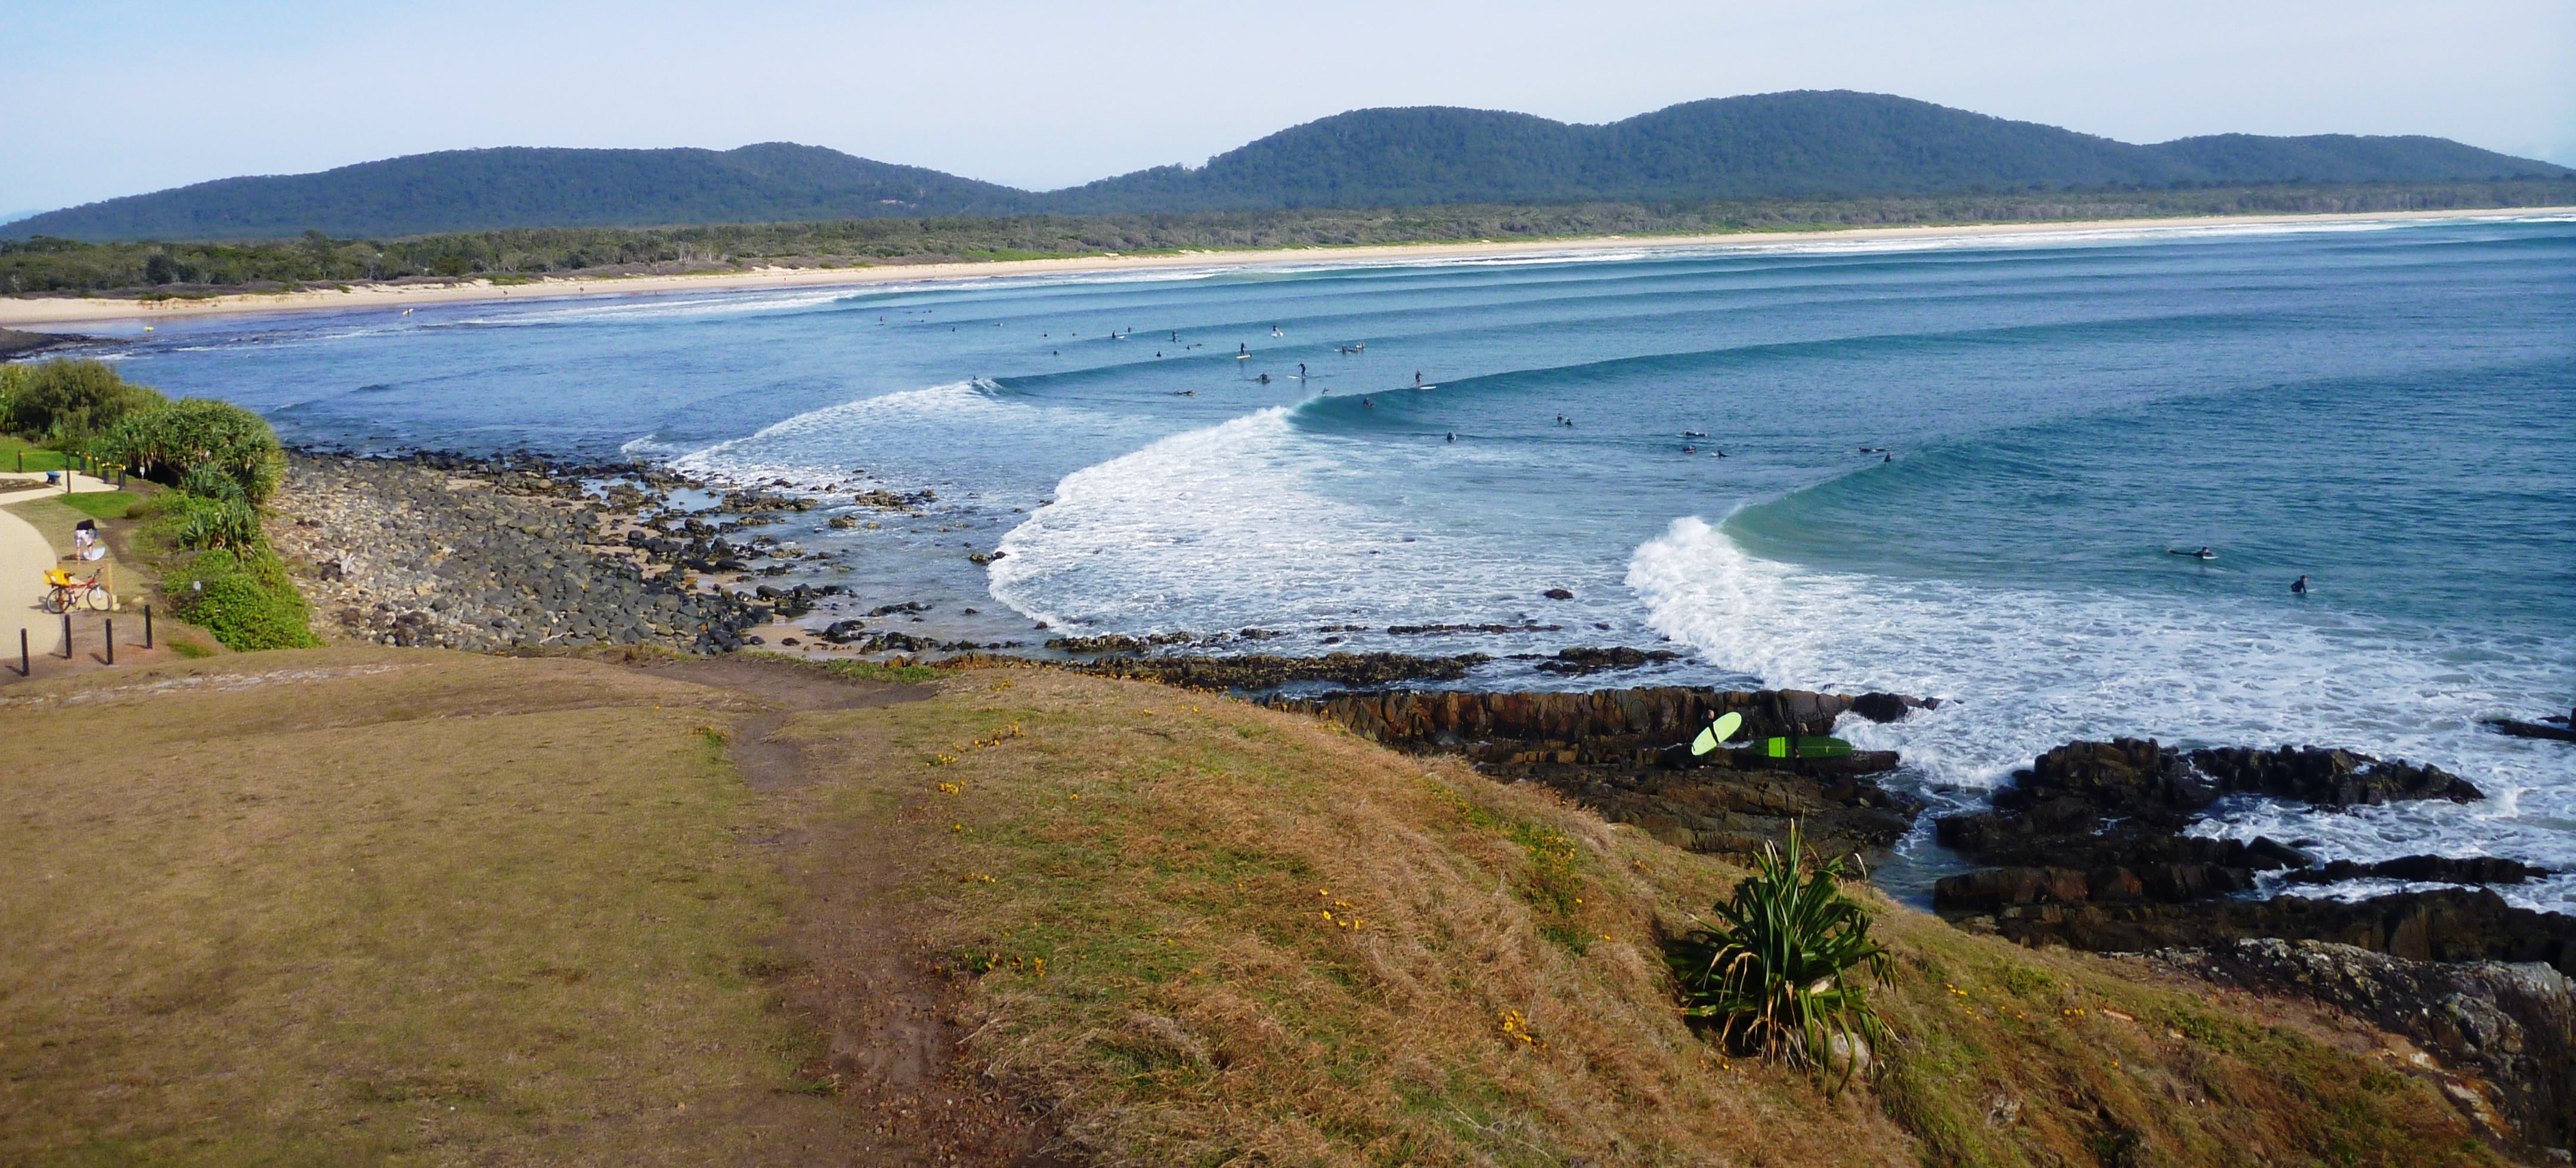 Crescent Head Surf Break